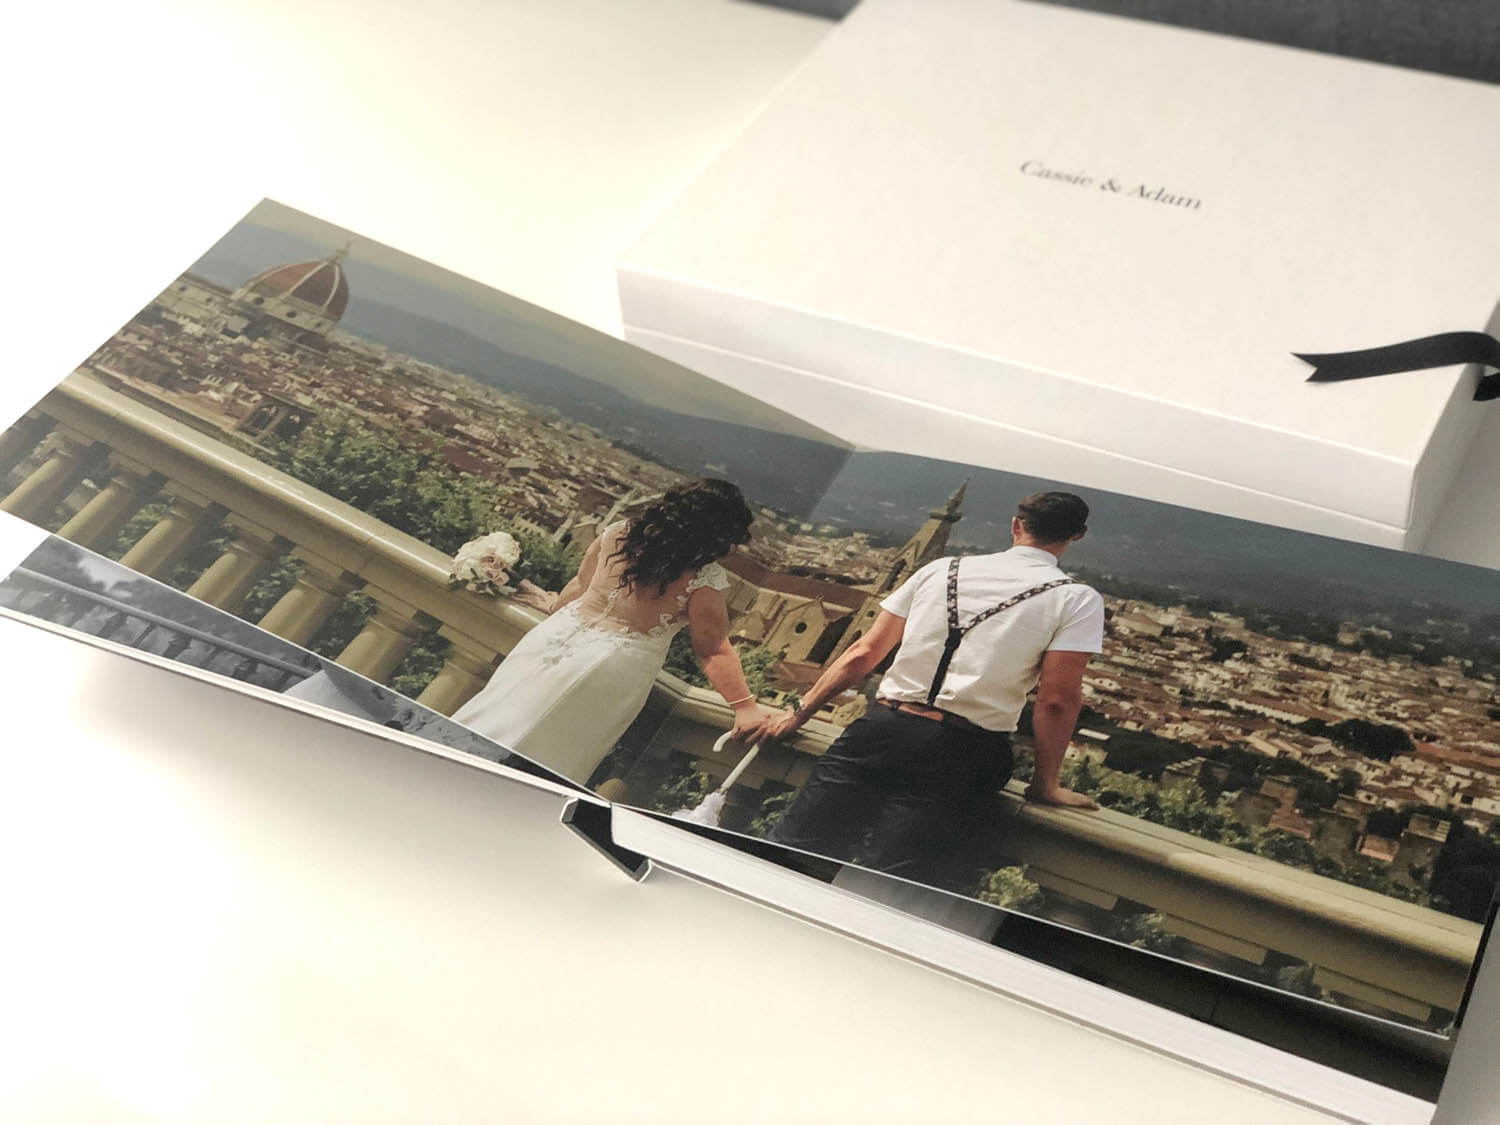 Inside open pages of storybook wedding album could in Florence Italy